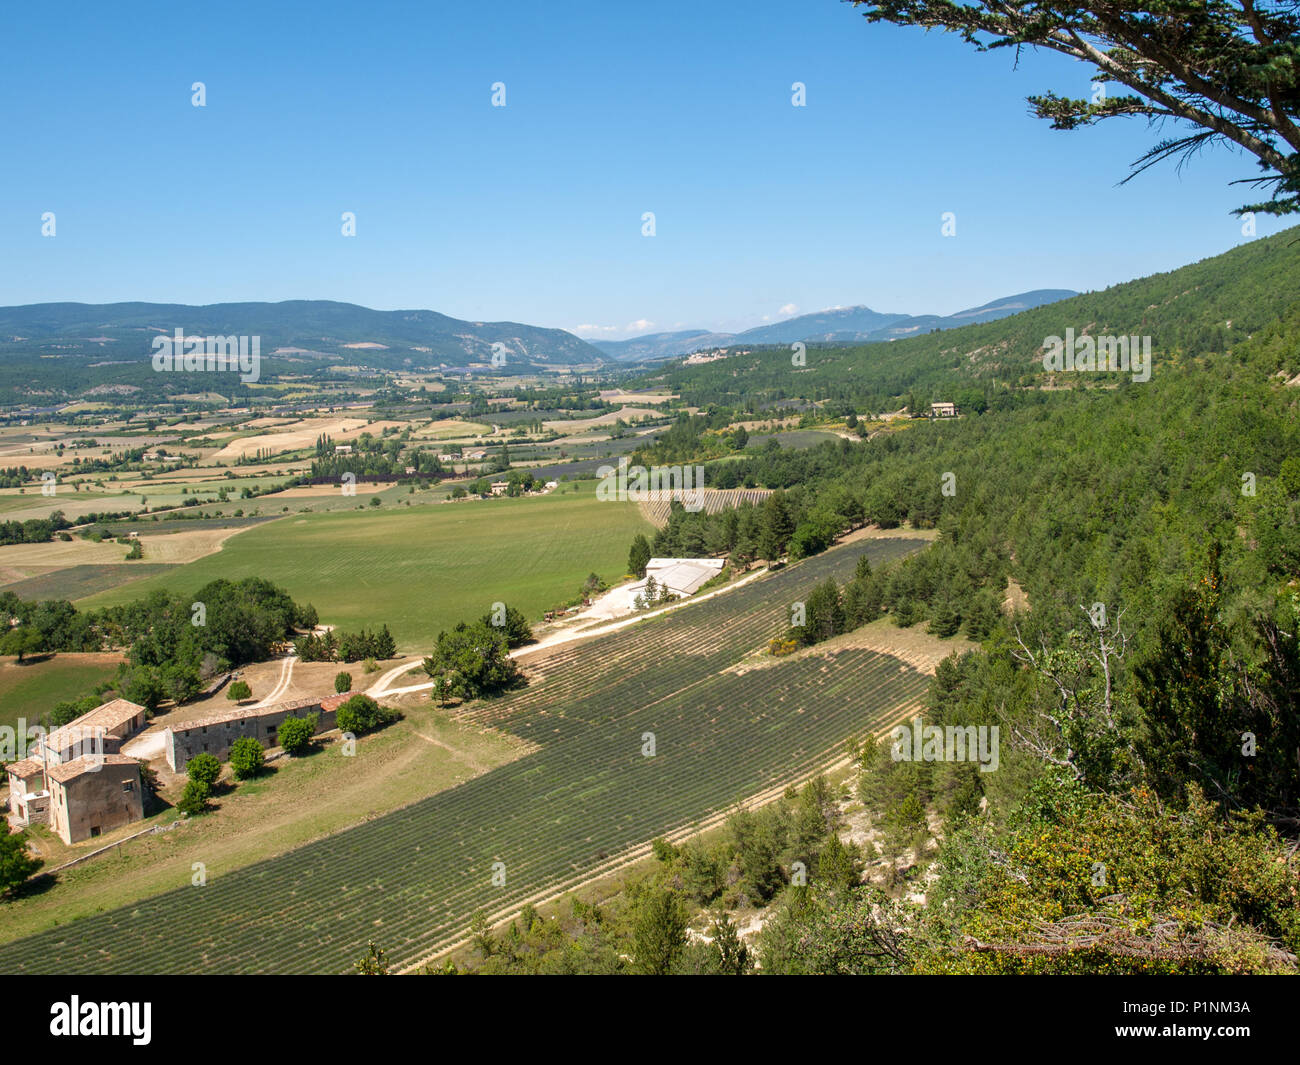 Fields and meadows in valley below Sault, Provence France - Stock Image